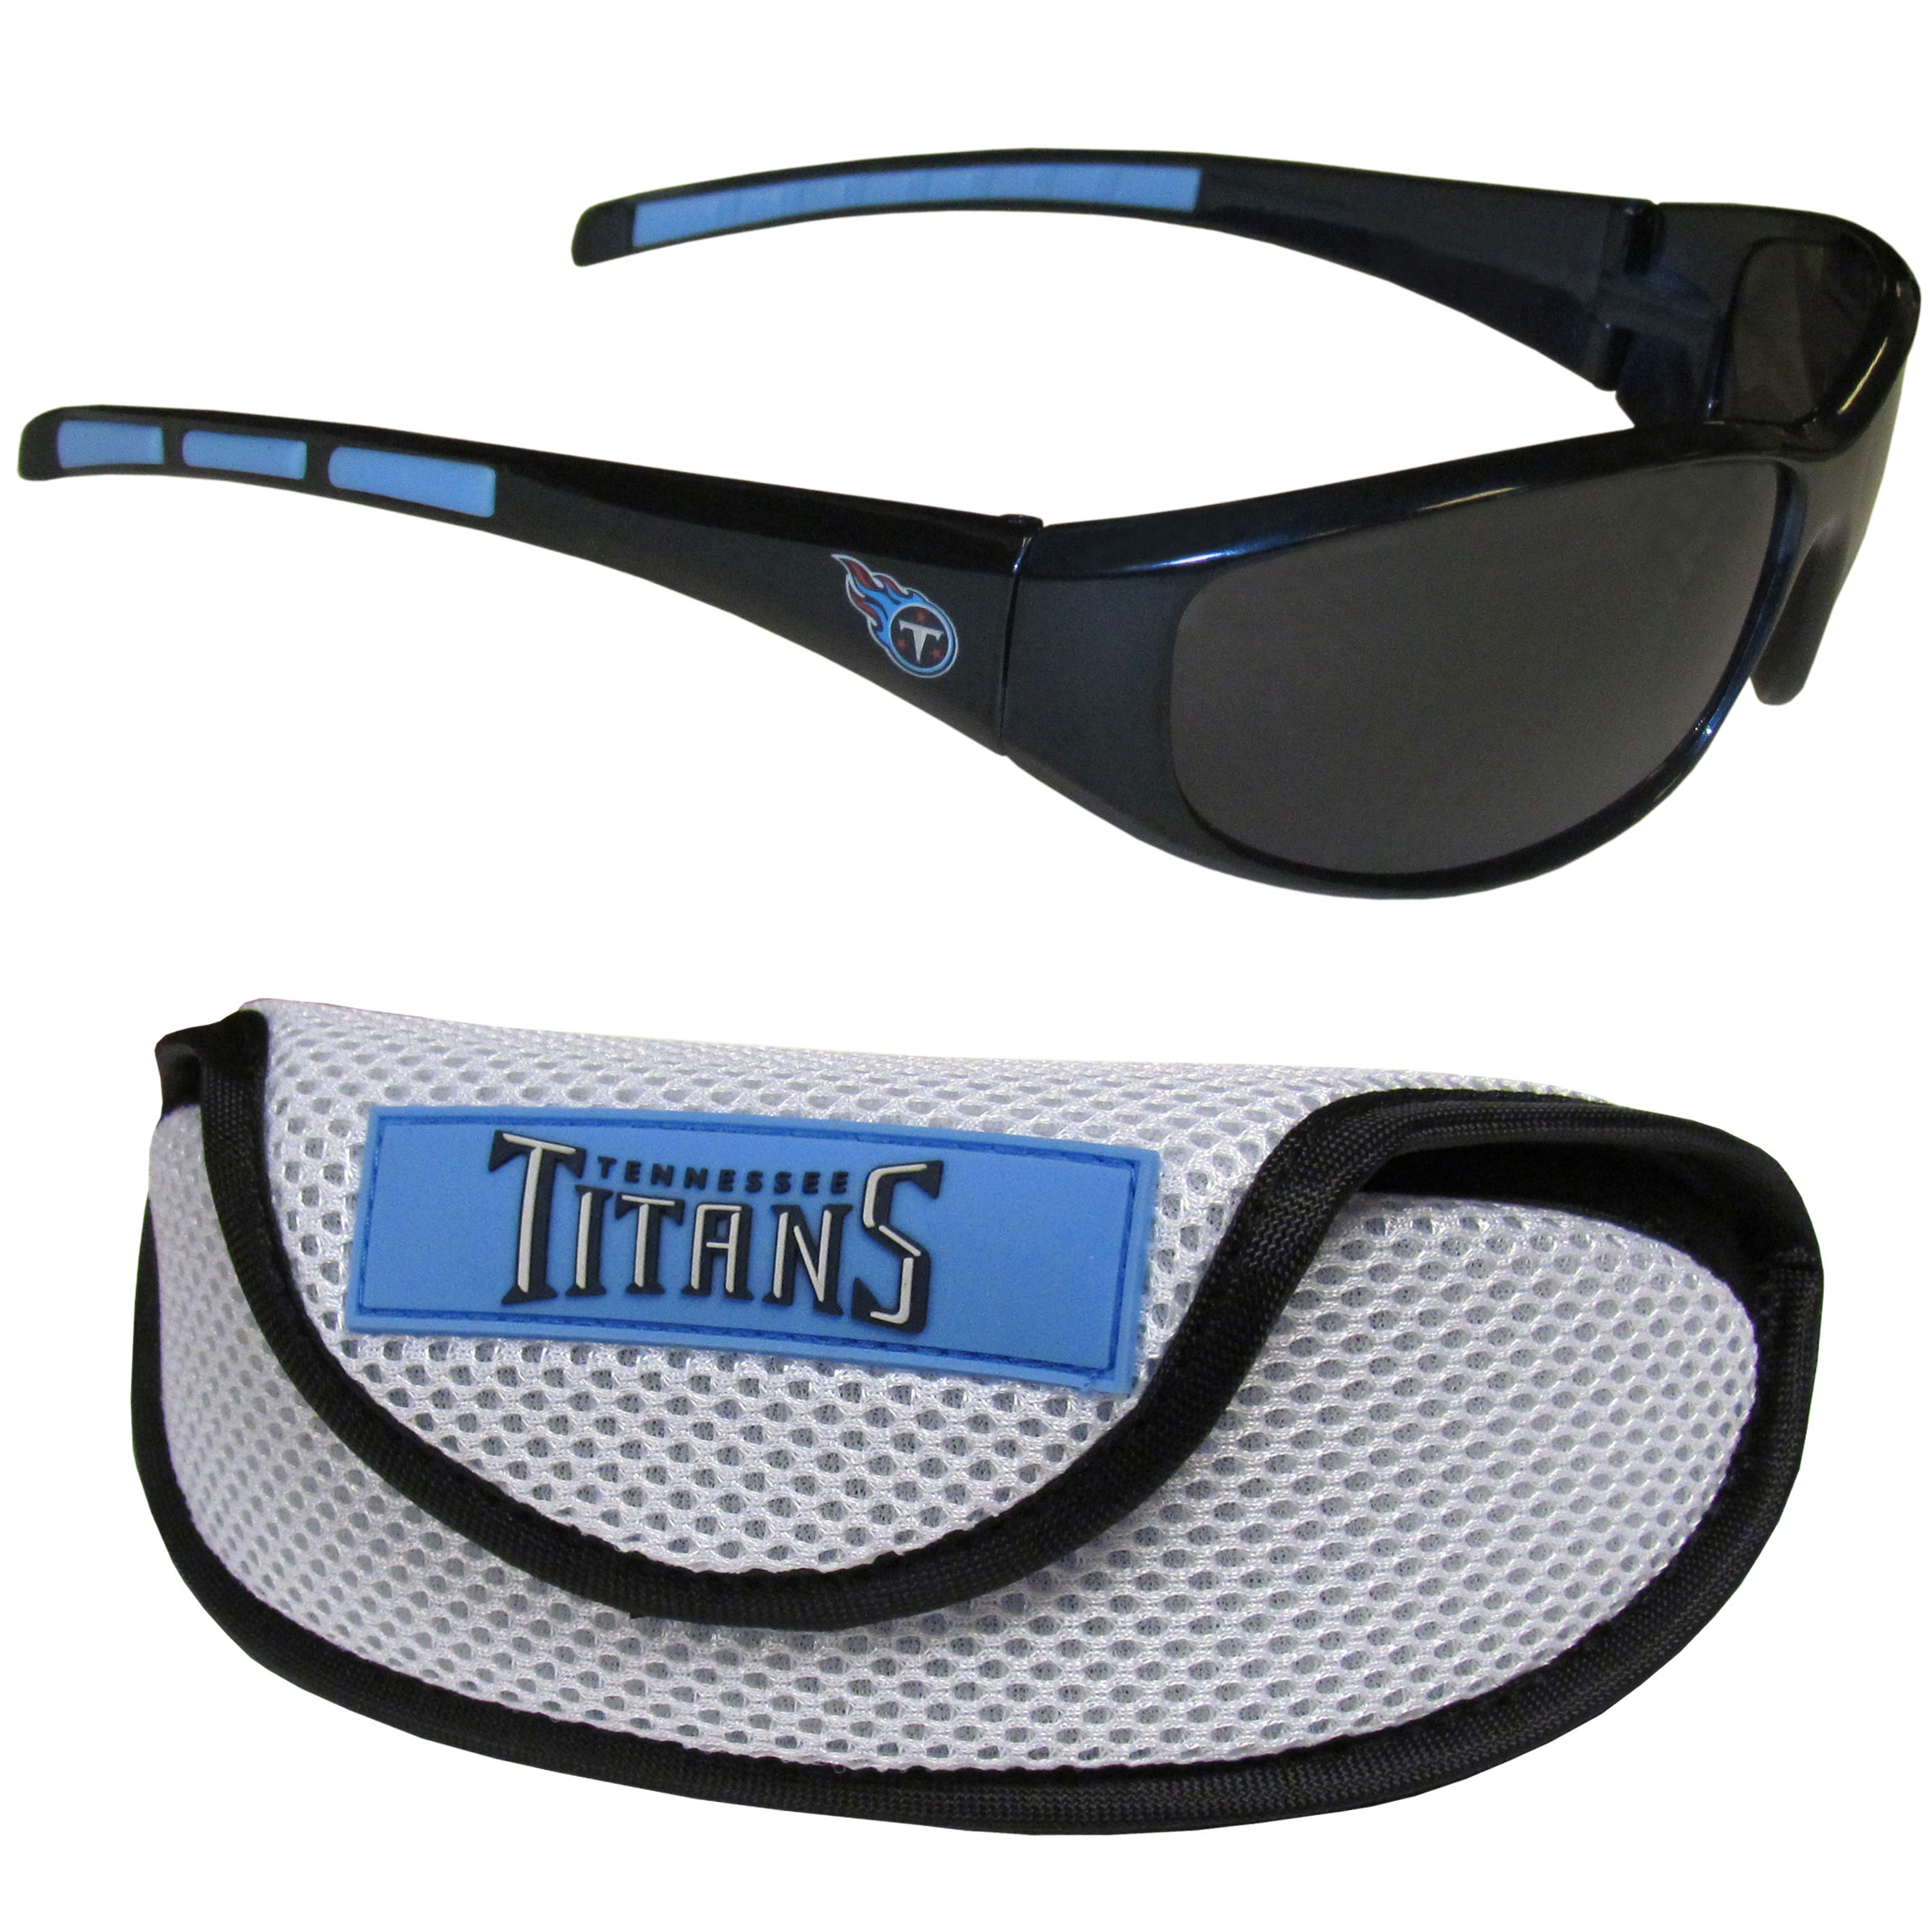 Tennessee Titans Wrap Sunglass and Case Set - This great set includes a high quality pair of Tennessee Titans wrap sunglasses and sport carrying case.